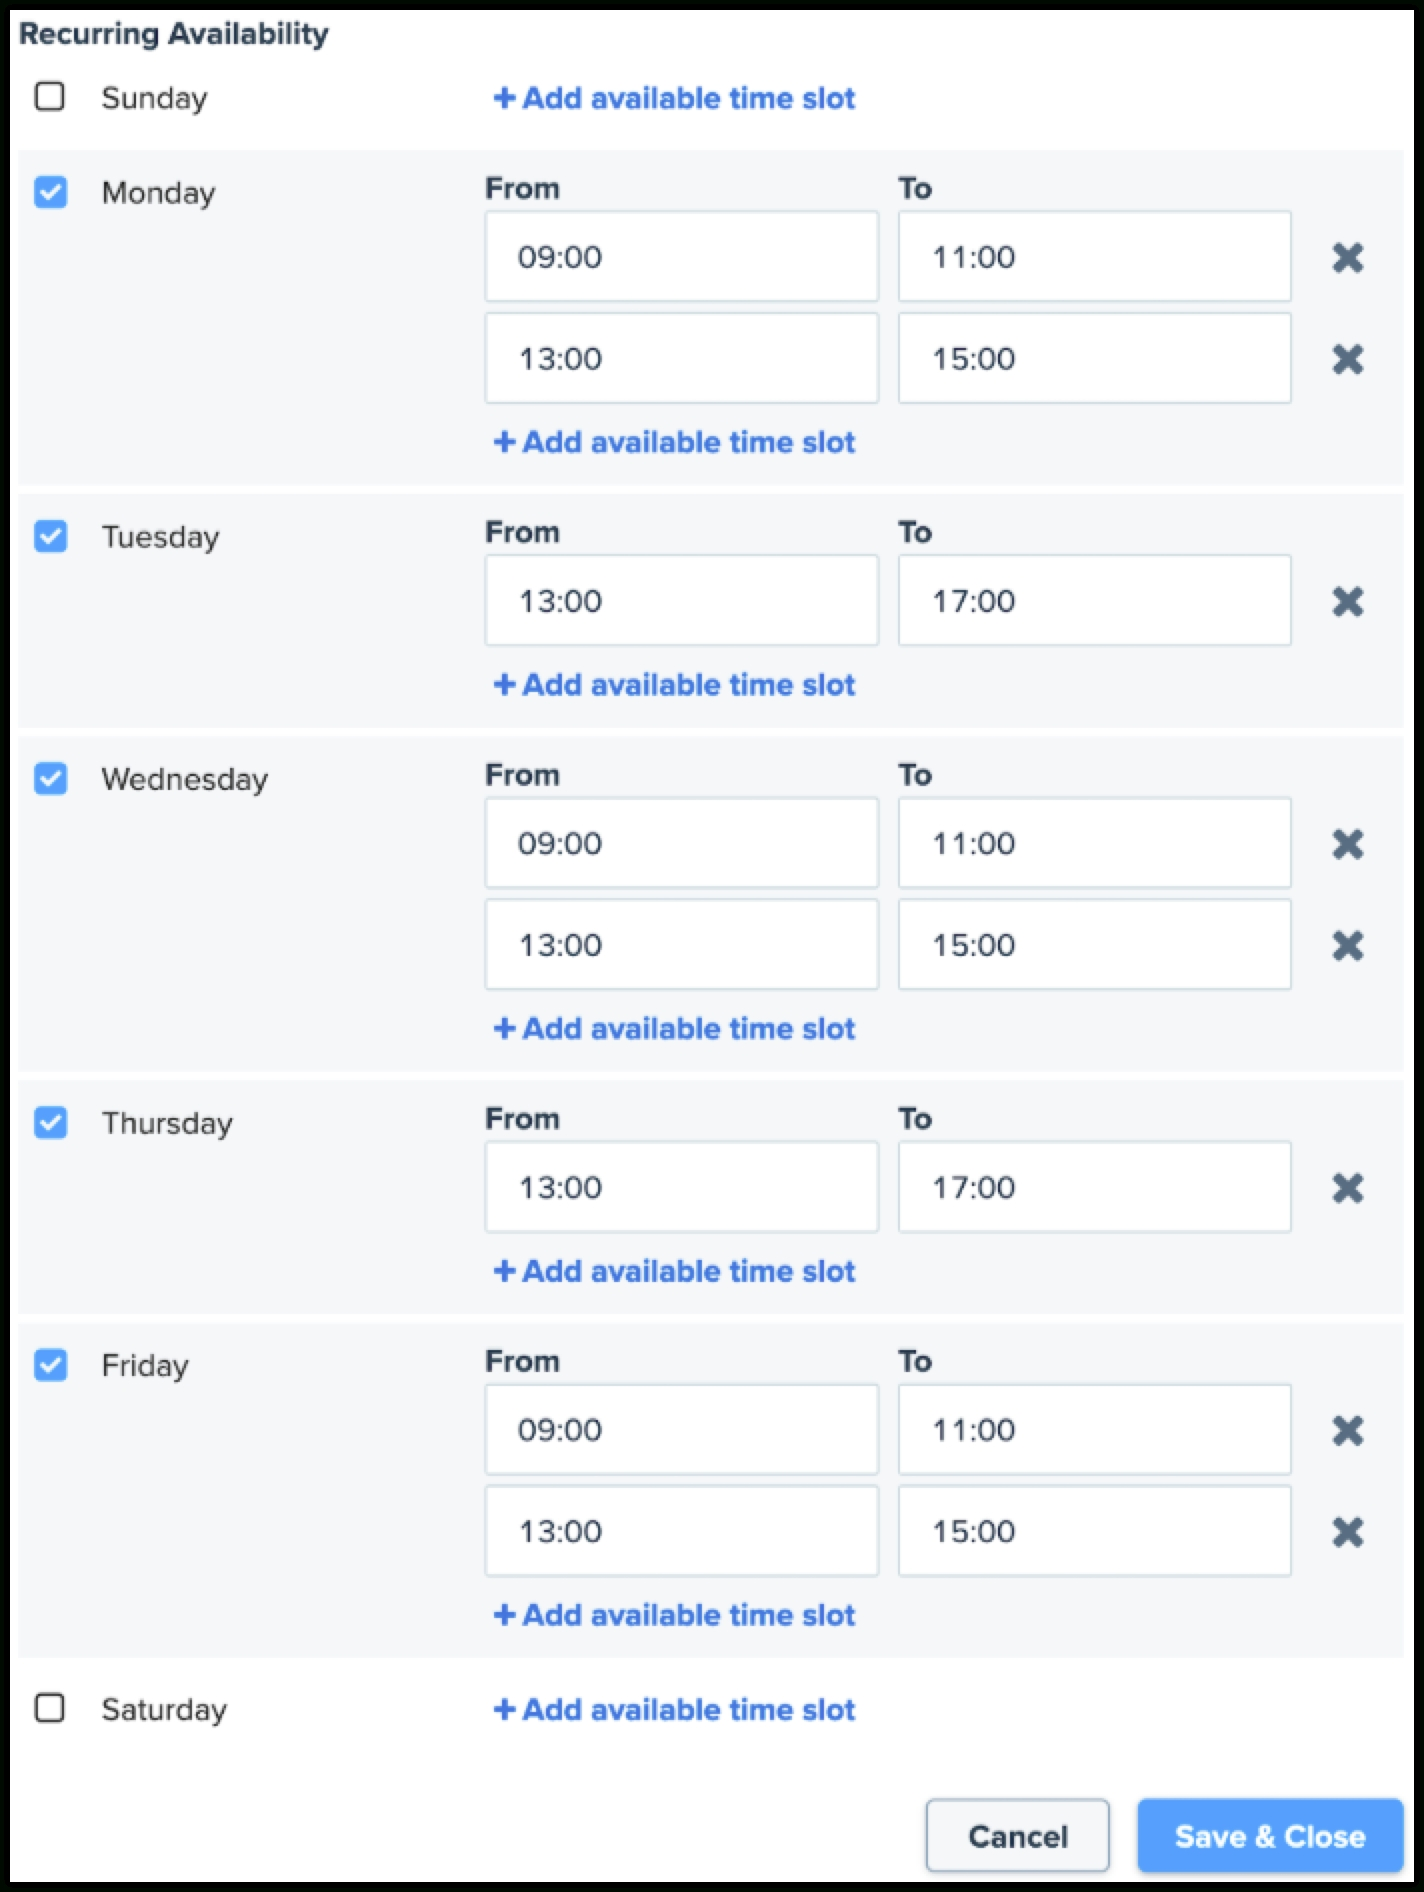 How Does Clio Scheduler Determine What Time Slots Are